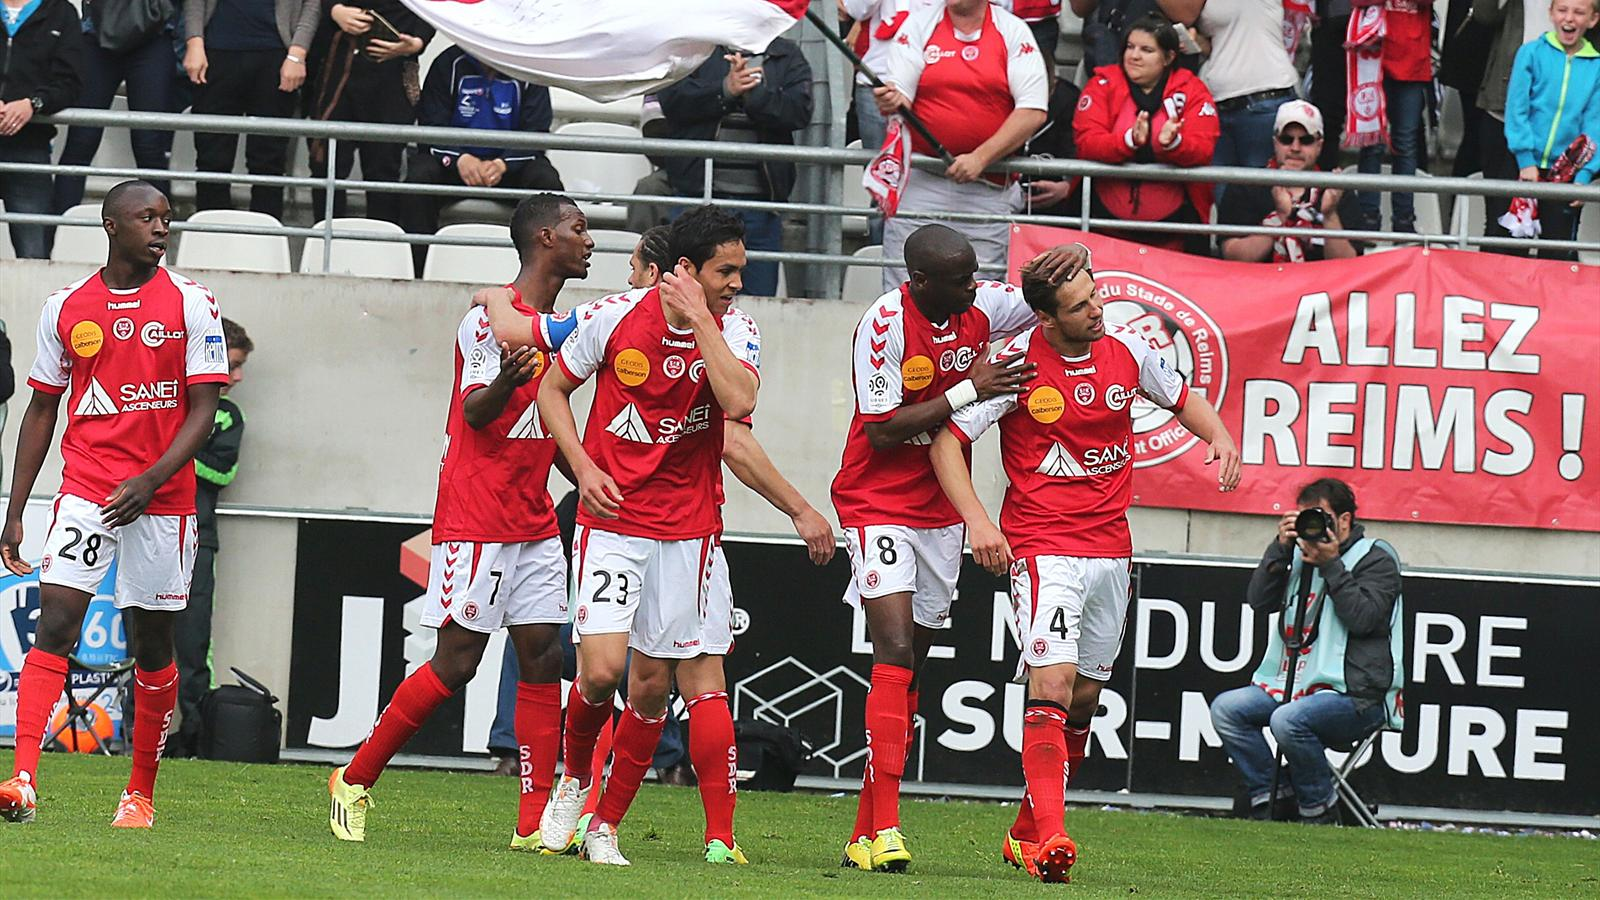 Match Stade de Reims vs Olympique de Marseille en direct streaming live